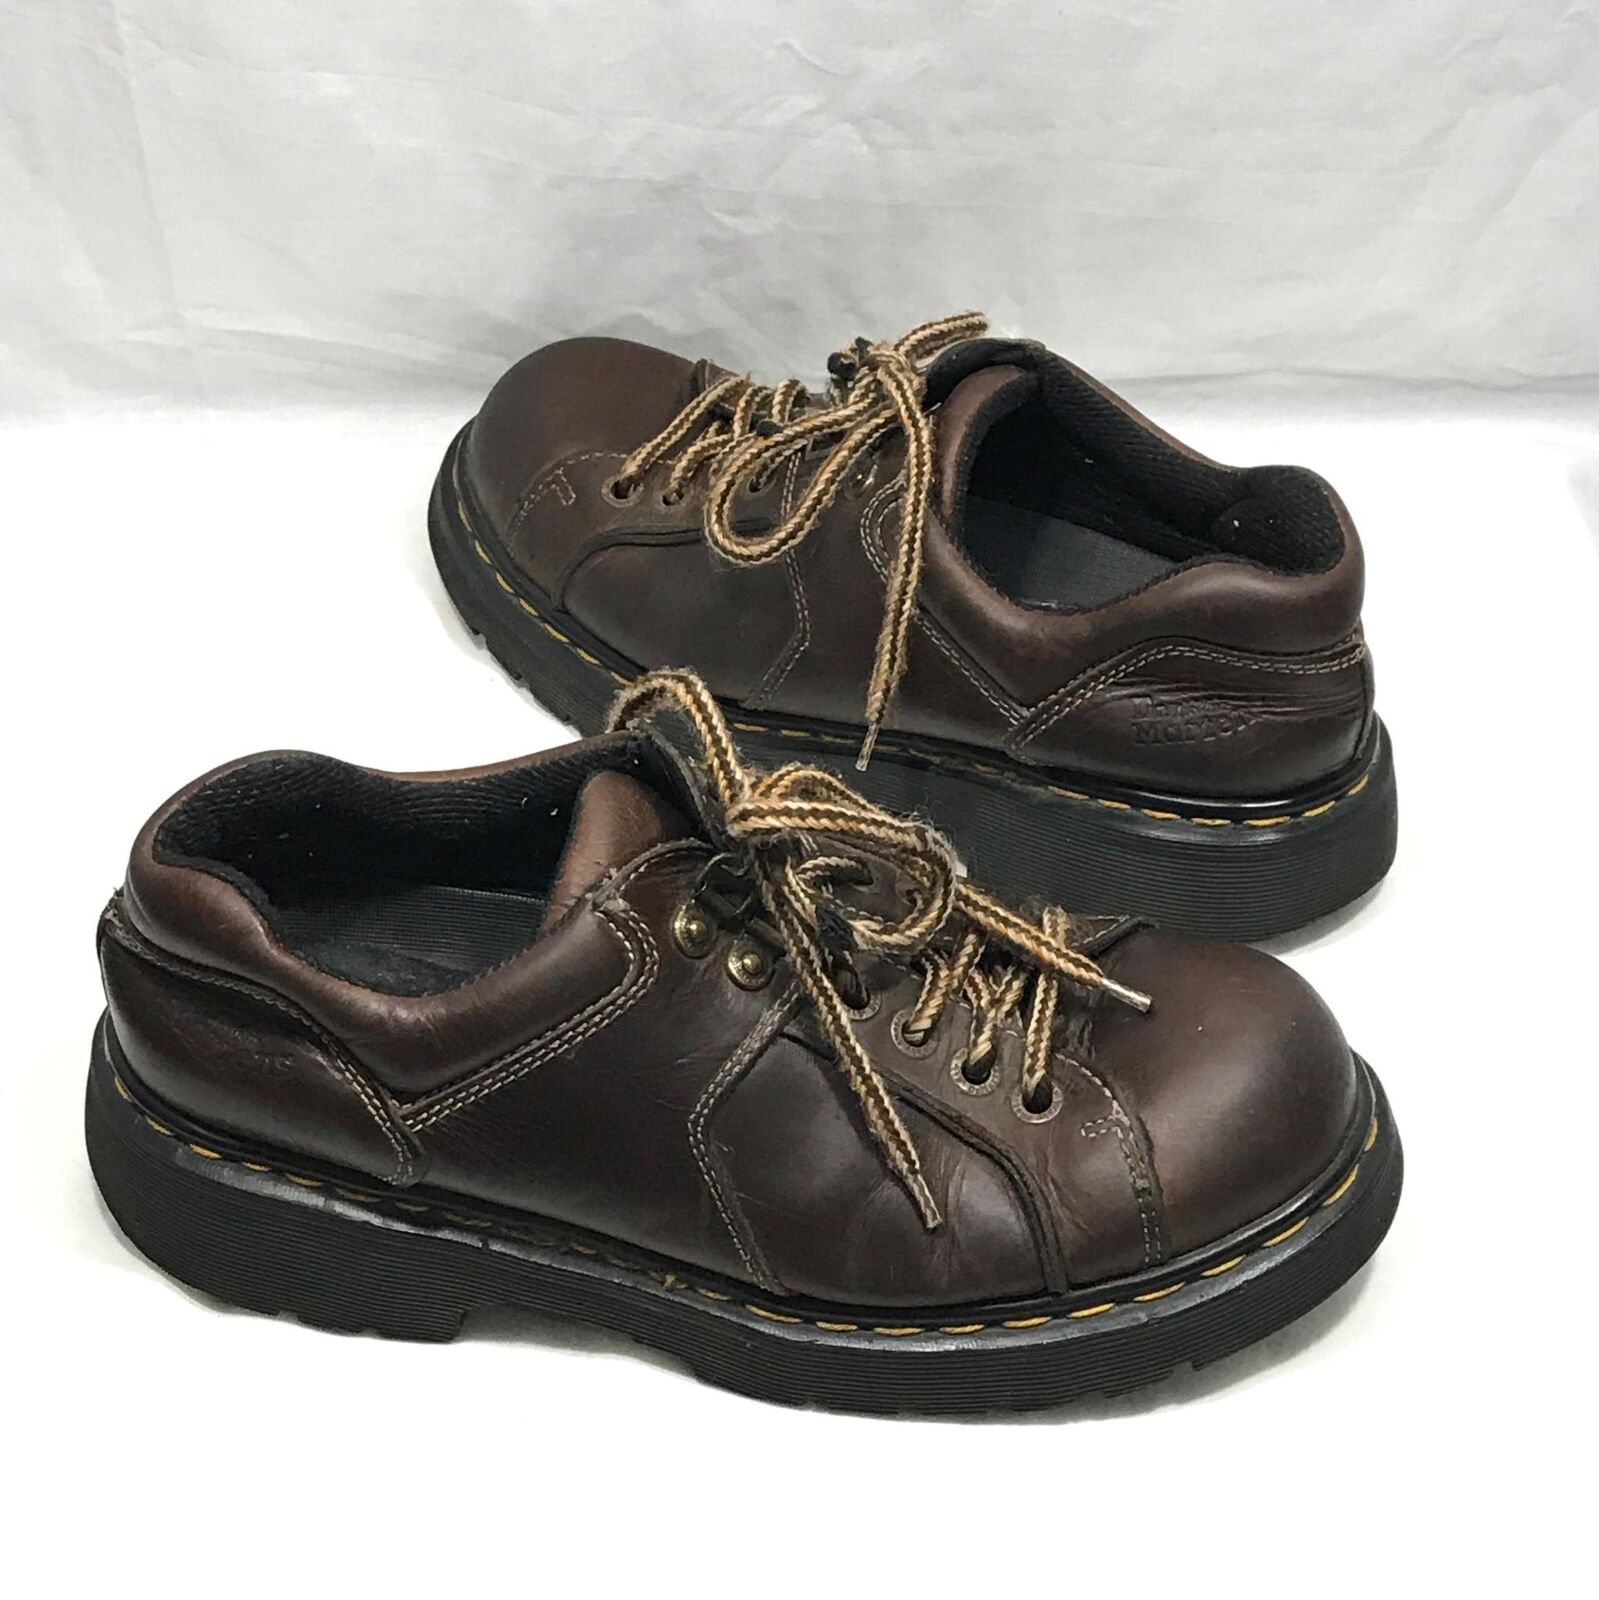 Dr Martens Brown Leather Lace Closure Ankle Boots shoes US 10 ENGLAND